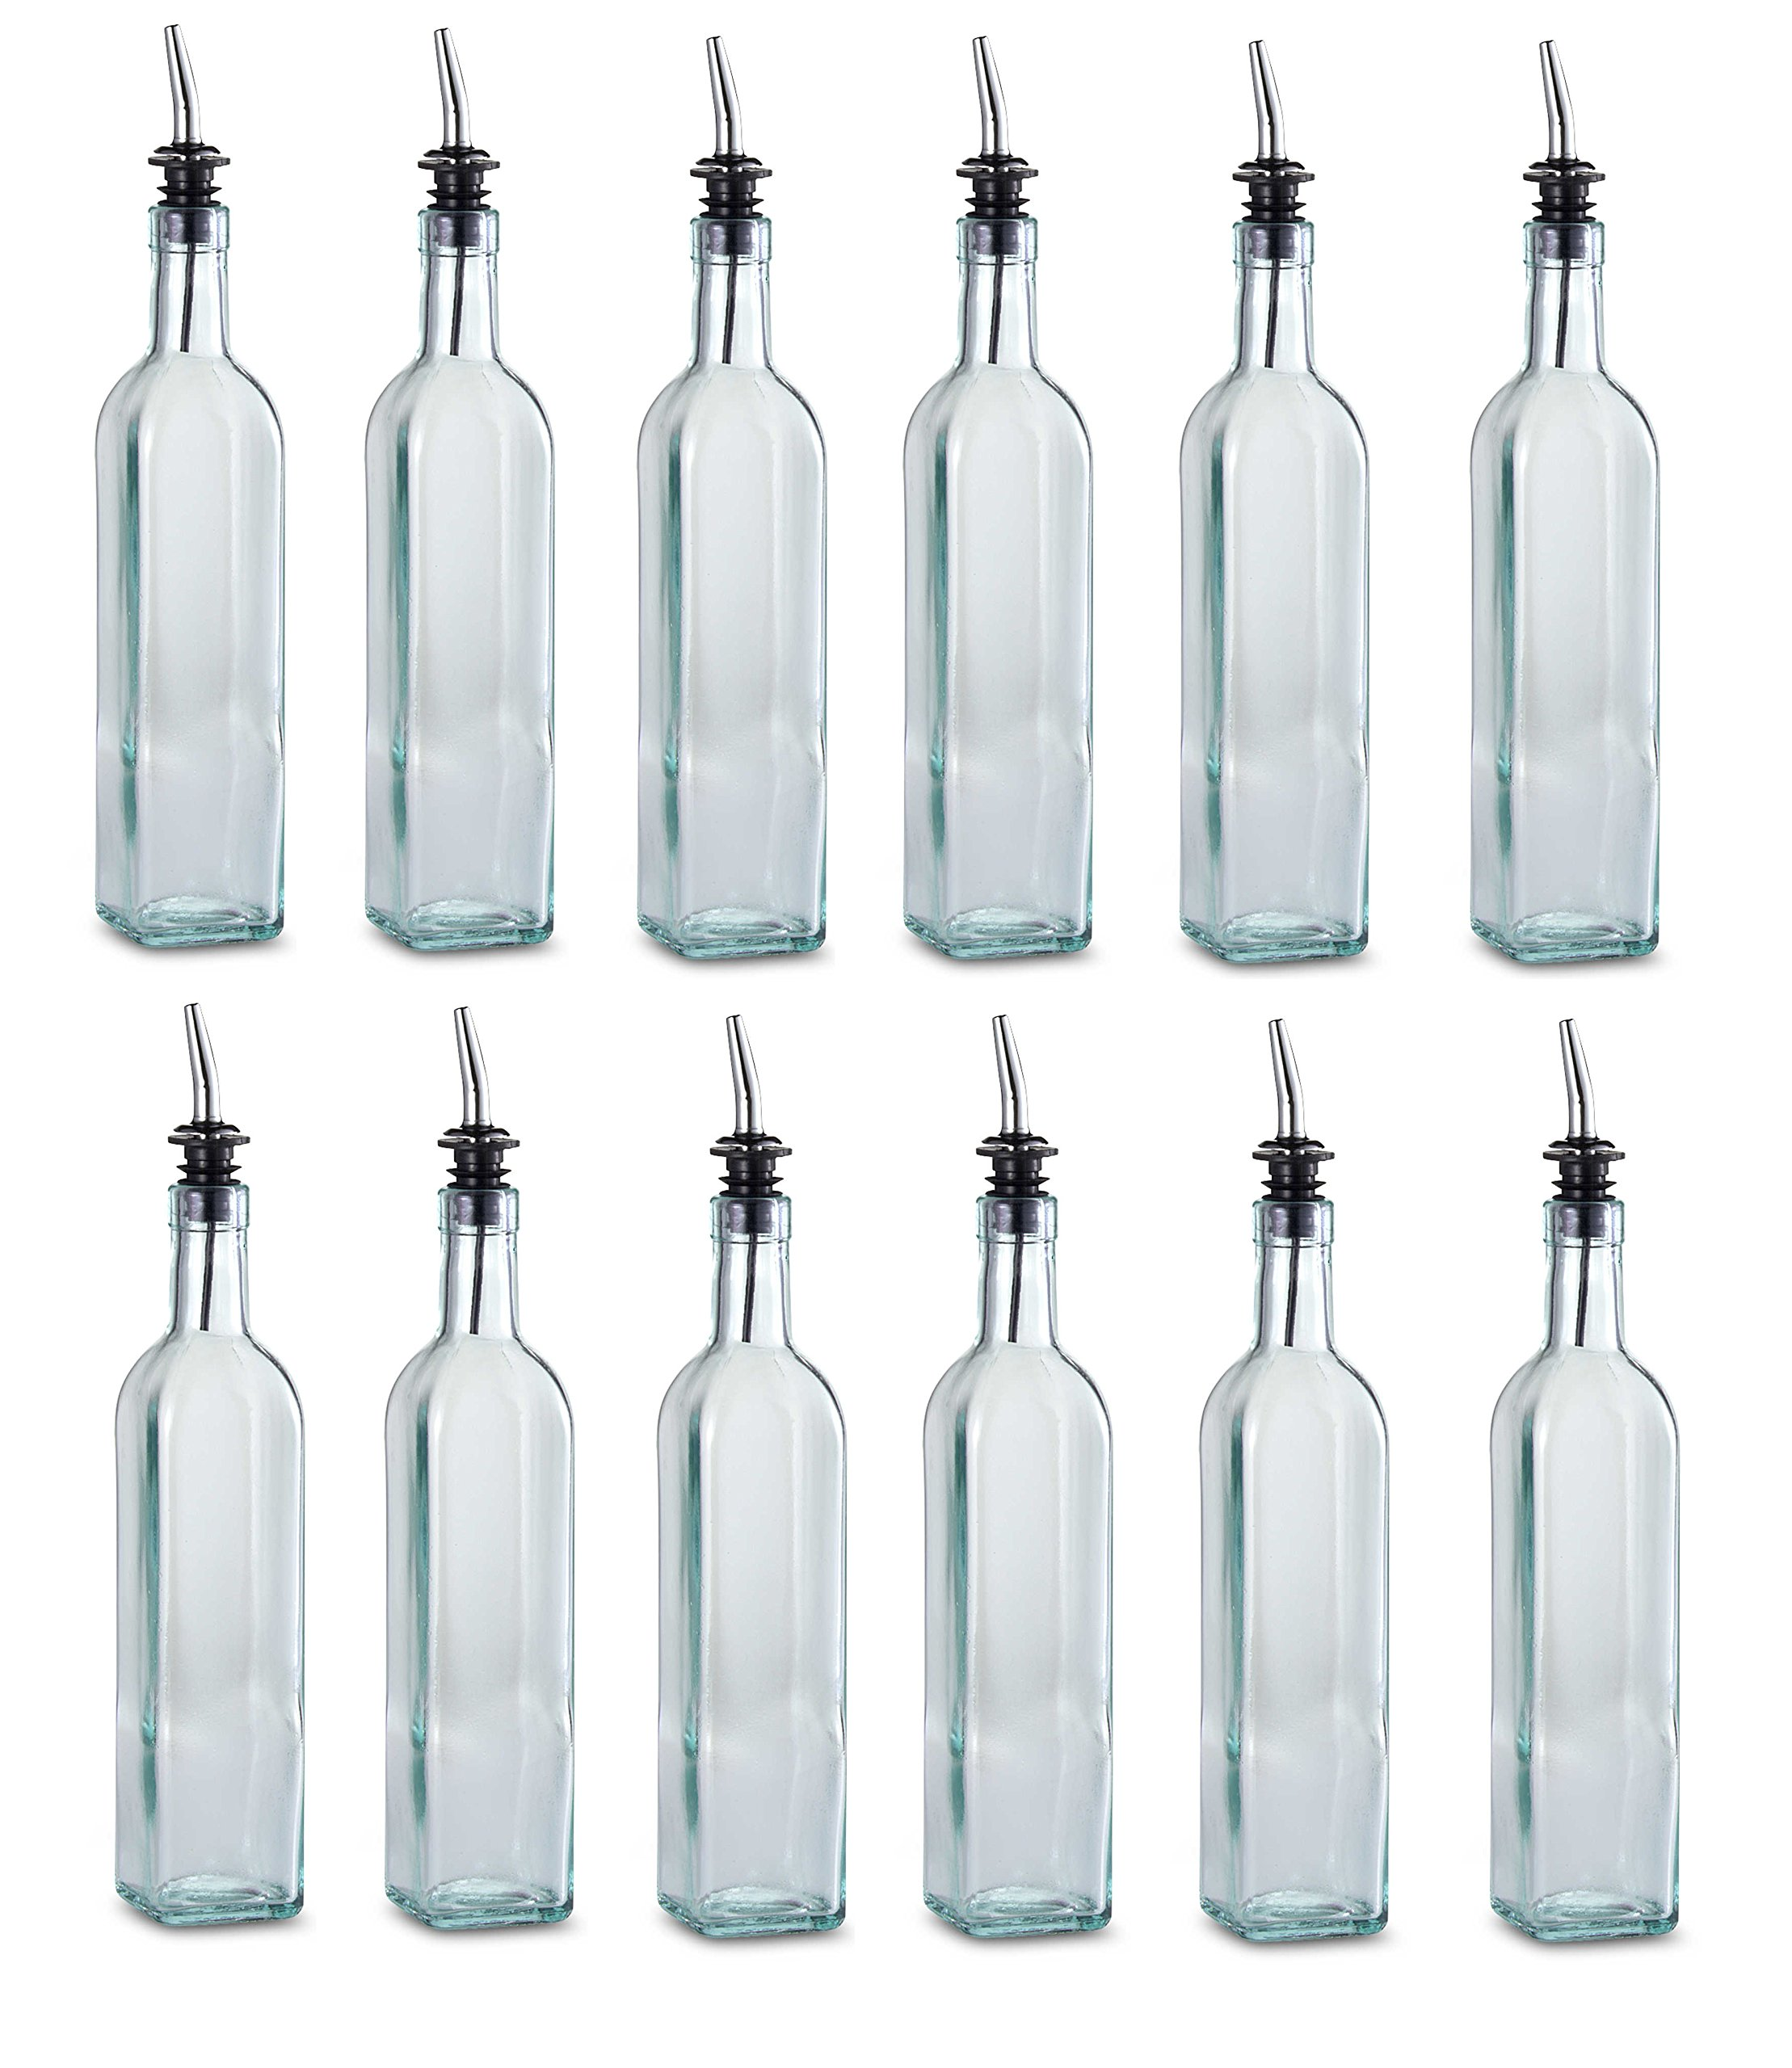 TableCraft 16 oz. Olive Oil Bottle with Pourer Made in USA (Set of 12) Brand New and Fast Shipping by Tablecraft